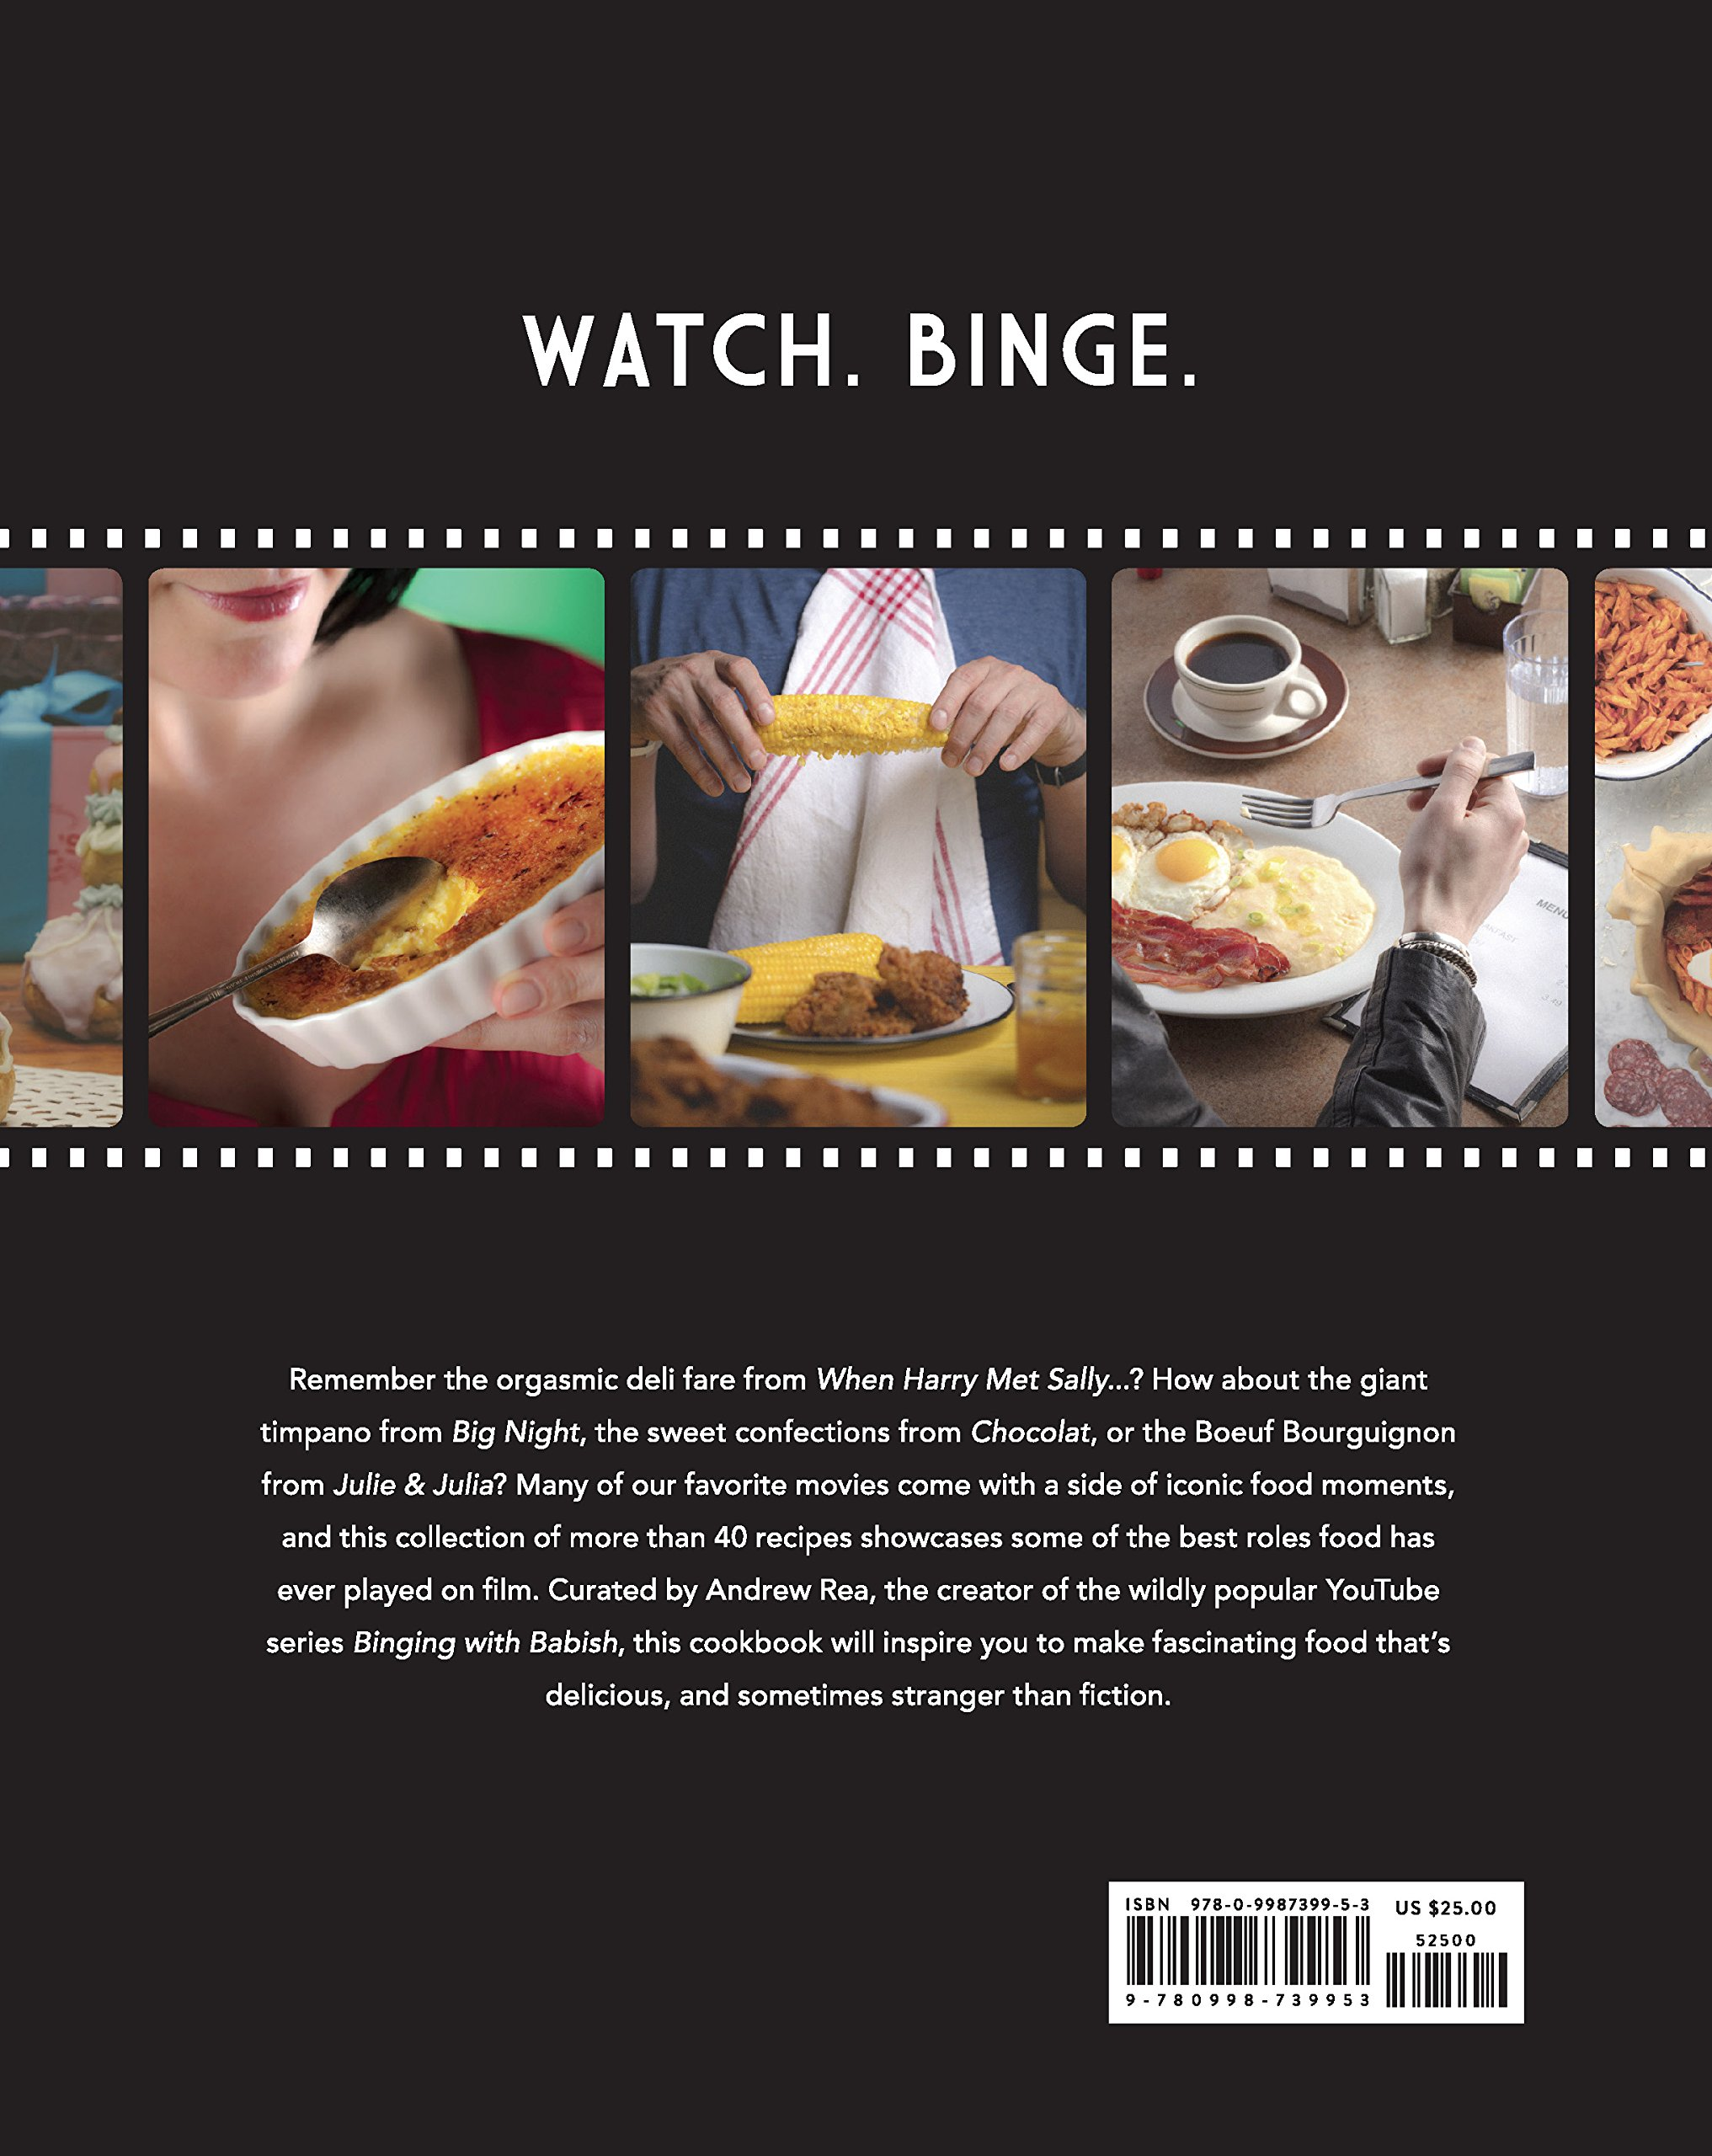 Eat What You Watch A Cookbook For Movie Lovers Amazon Co Uk Rea Andrew 9780998739953 Books